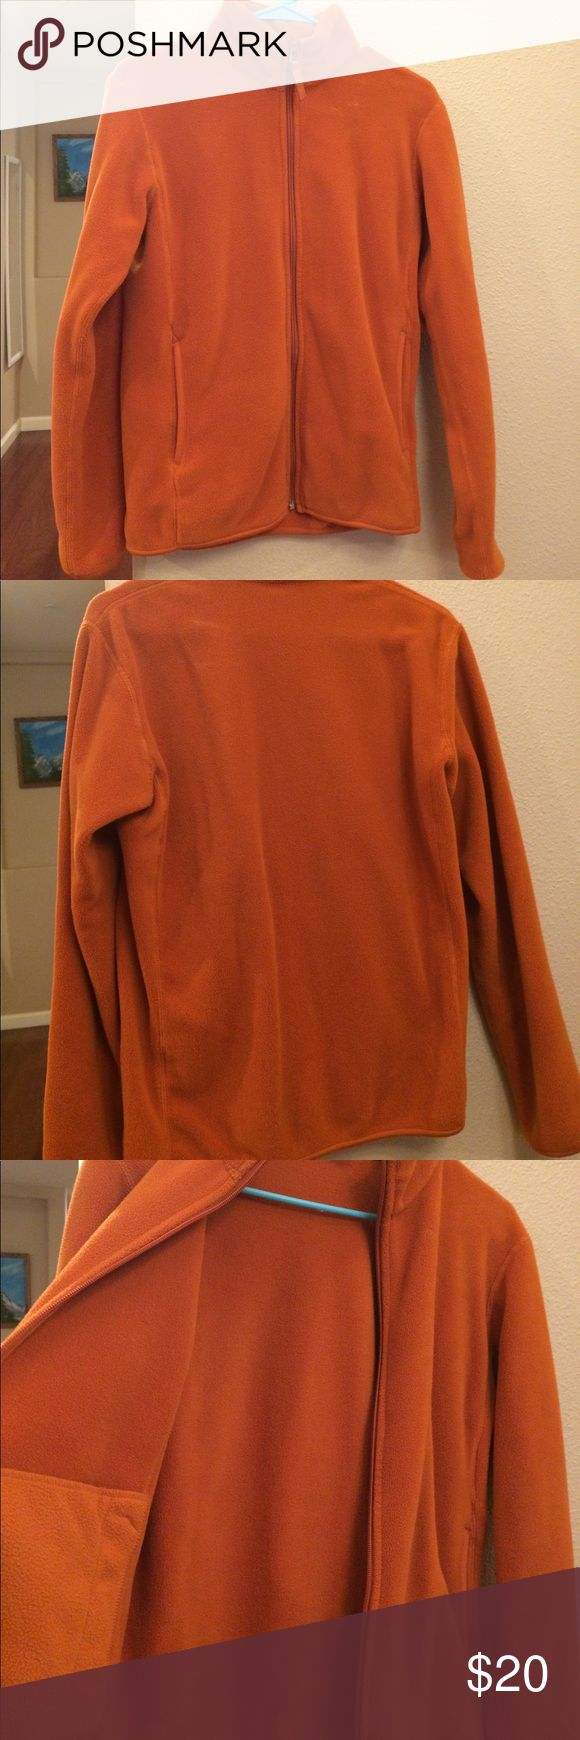 Uniqlo Orange Fleece Jacket Sz XS Gently used. Good condition- clean/ no stains. Soft and warm! Has two side pockets on outside and two pockets on inside. Color is a burnt orange. No trades. Uniqlo Jackets & Coats